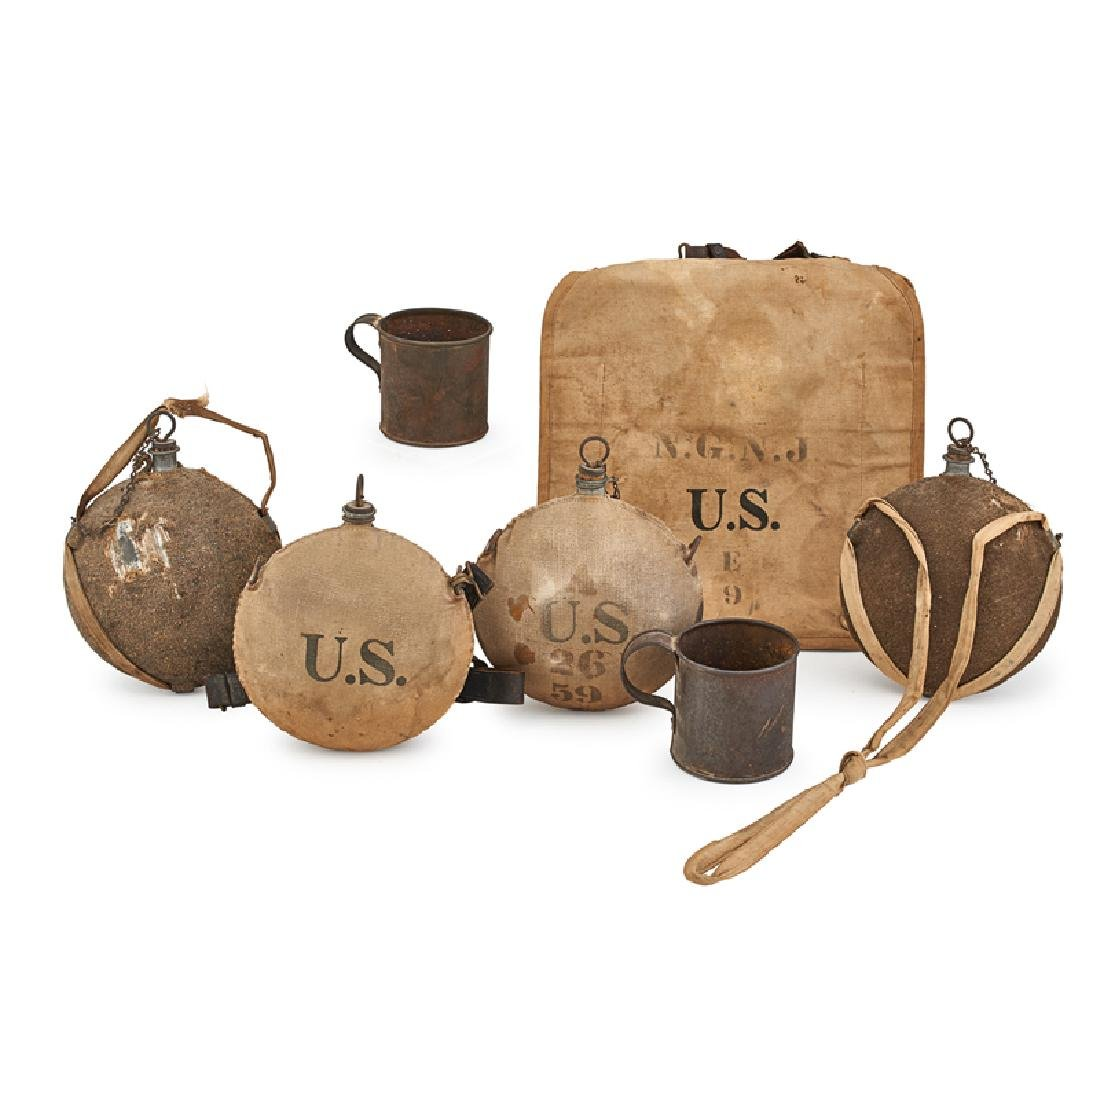 19TH C. UNITED STATES ARMY ACCOUTREMENTS